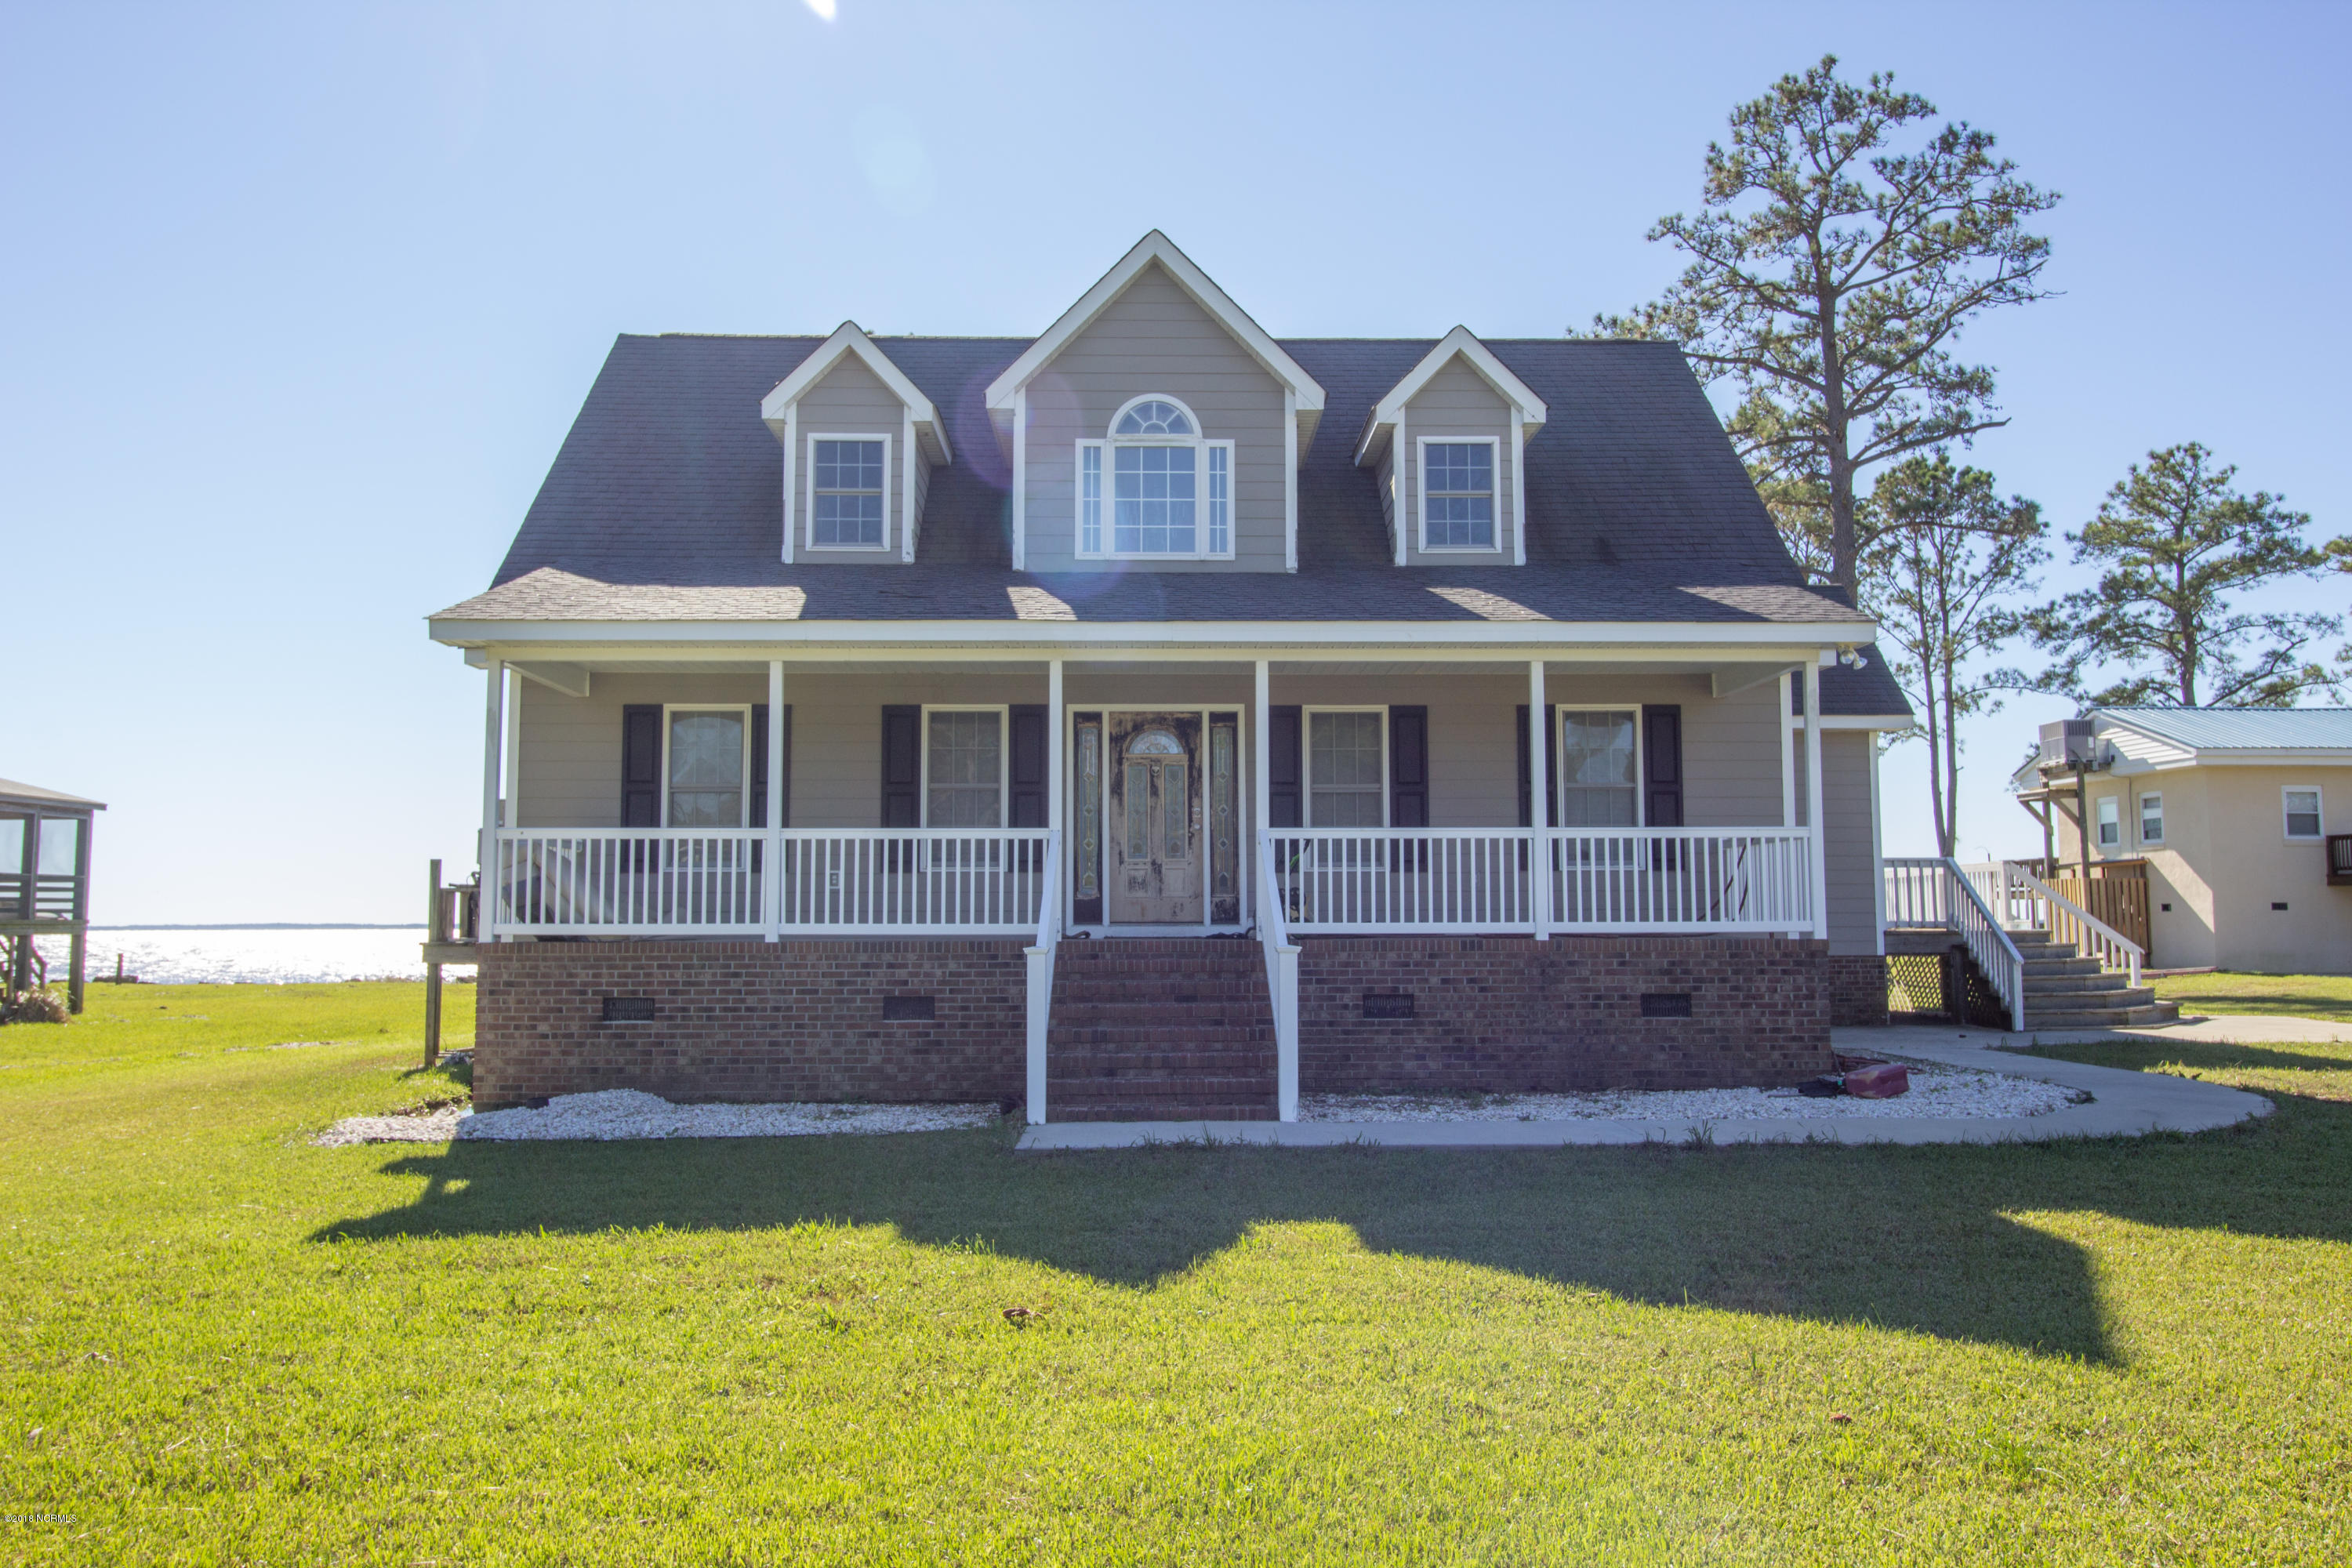 773 Old Pamlico Beach Road, Belhaven, North Carolina, 3 Bedrooms Bedrooms, 7 Rooms Rooms,2 BathroomsBathrooms,Single family residence,For sale,Old Pamlico Beach,100140304